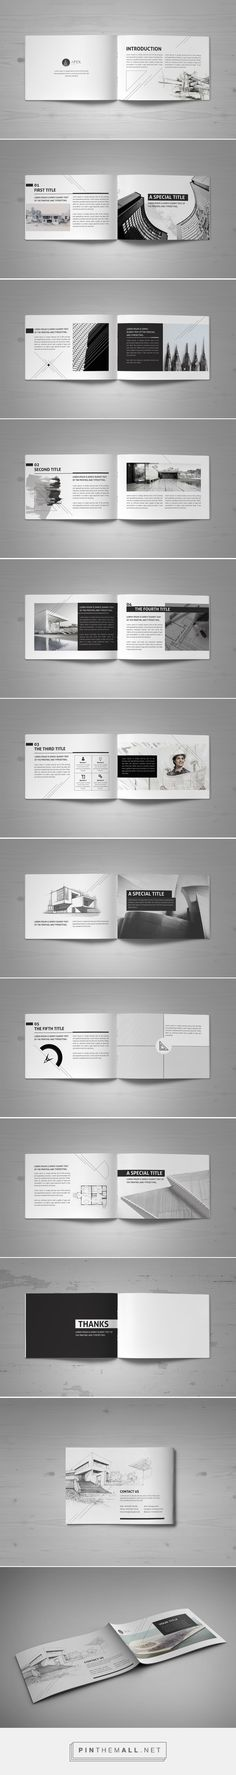 Get your book layout design within 24 hou